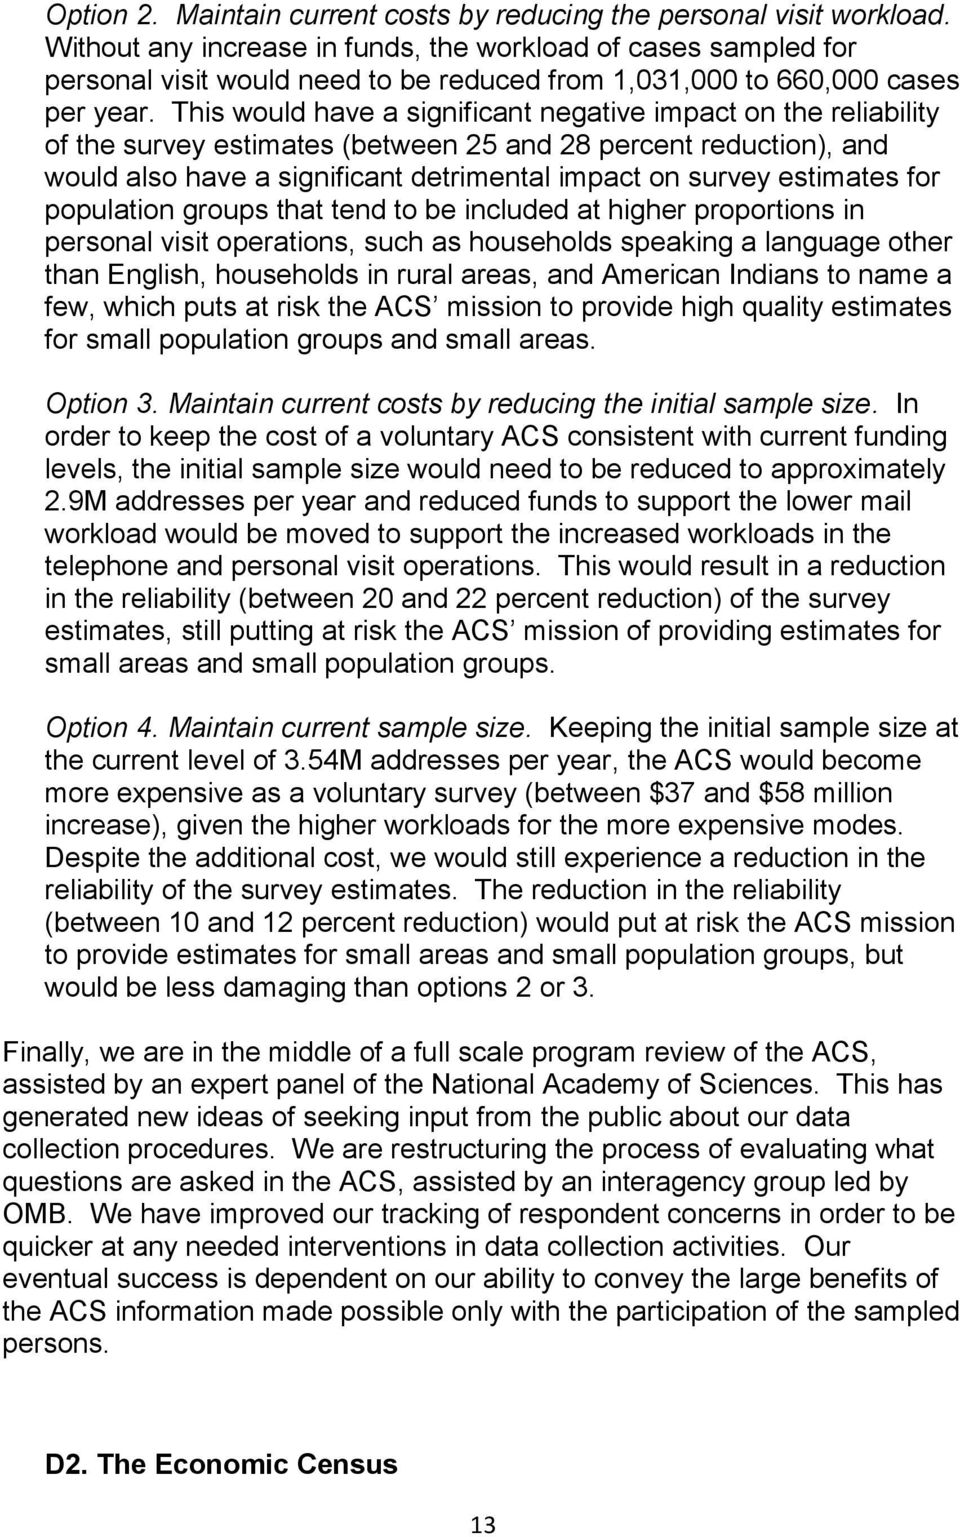 This would have a significant negative impact on the reliability of the survey estimates (between 25 and 28 percent reduction), and would also have a significant detrimental impact on survey